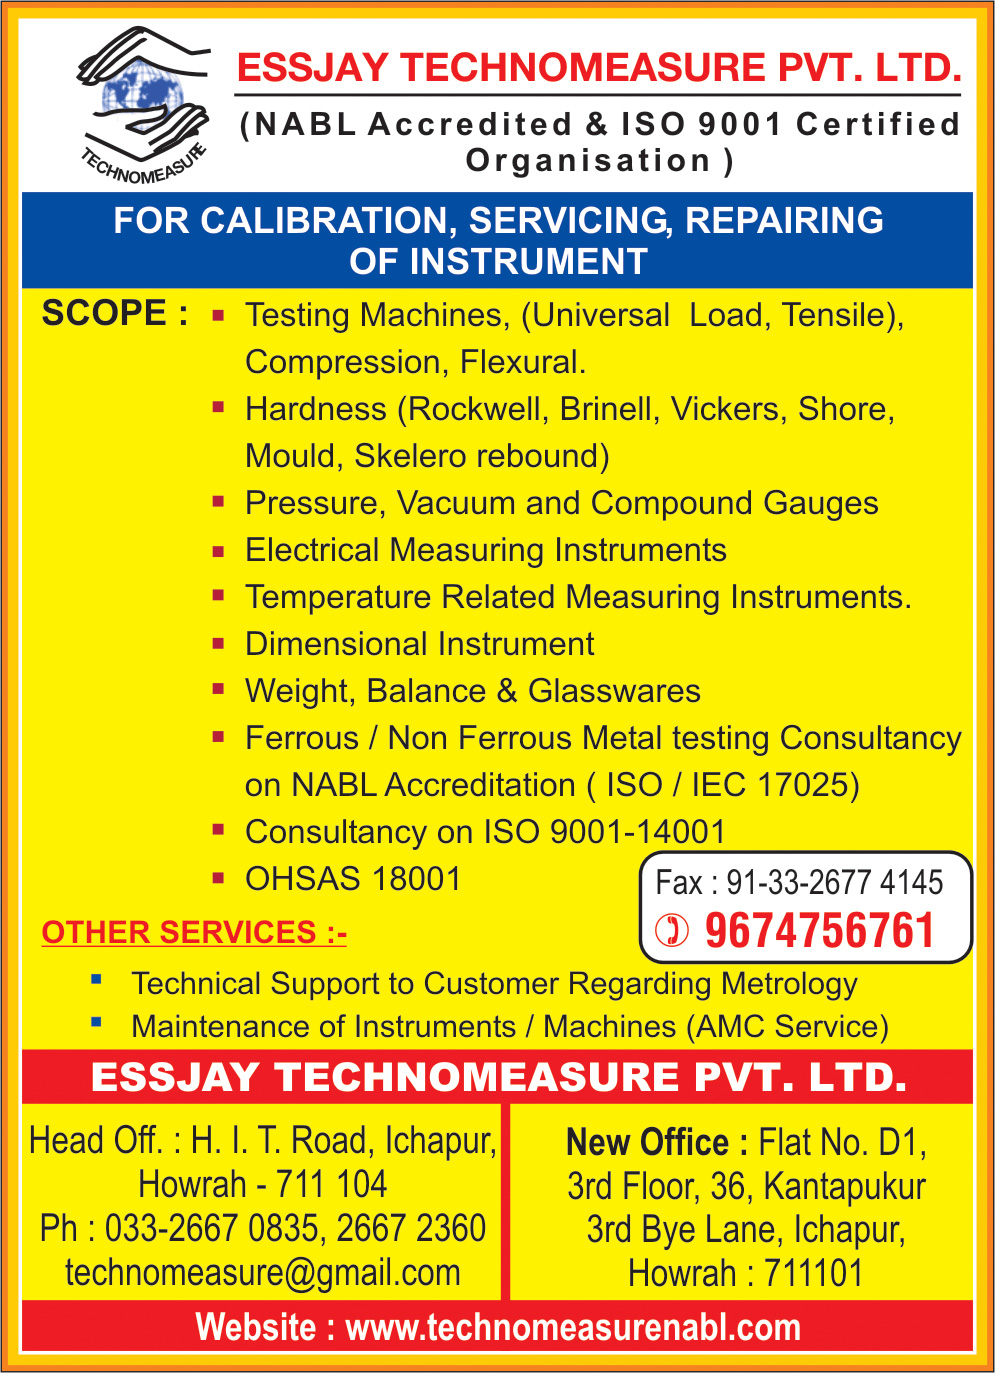 ESSJAY TECHNOMEASURE PVT LTD Calibrators Kolkata Yellow Pages Kolkata West Bengal